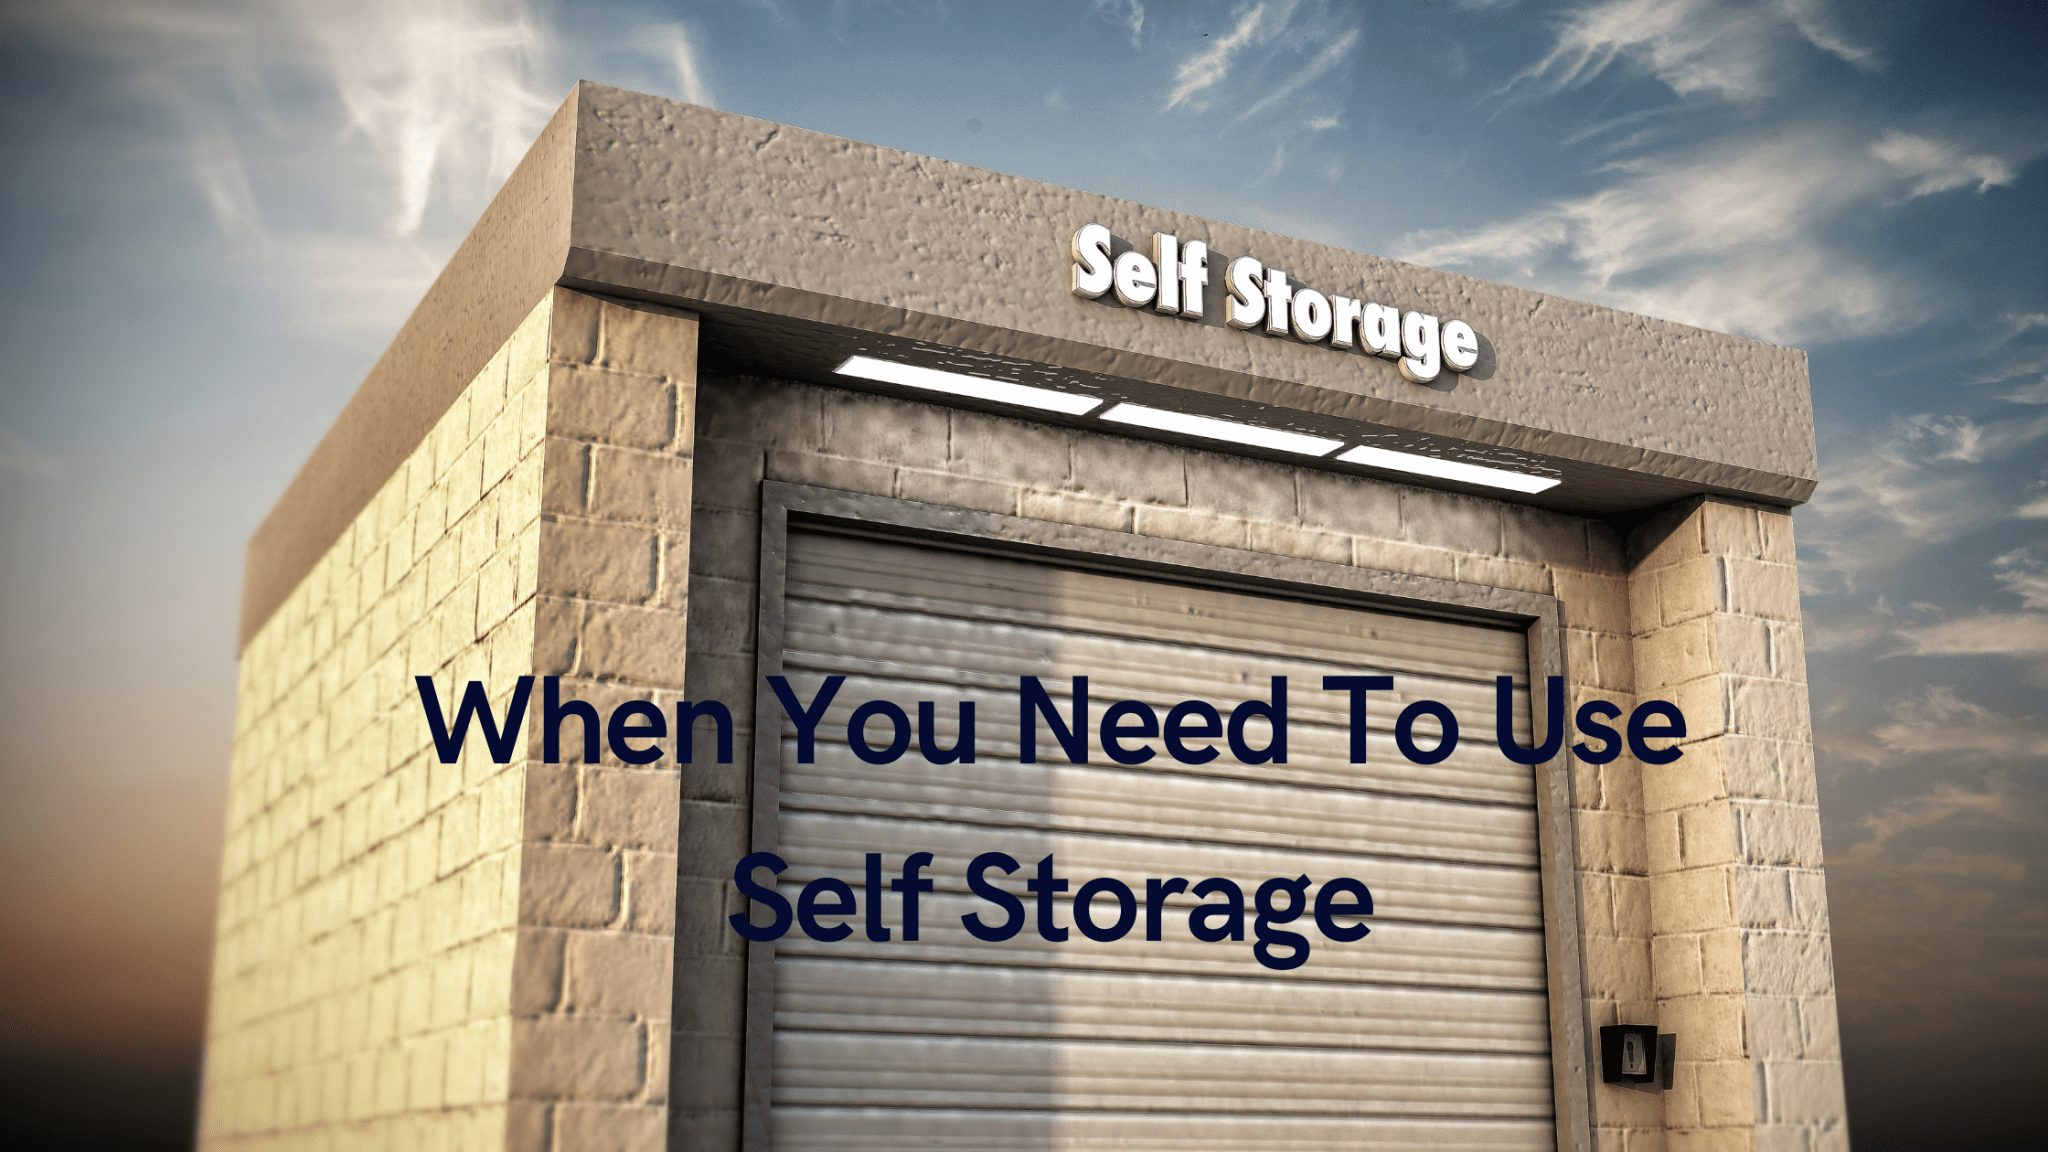 When You Need To Use Self Storage